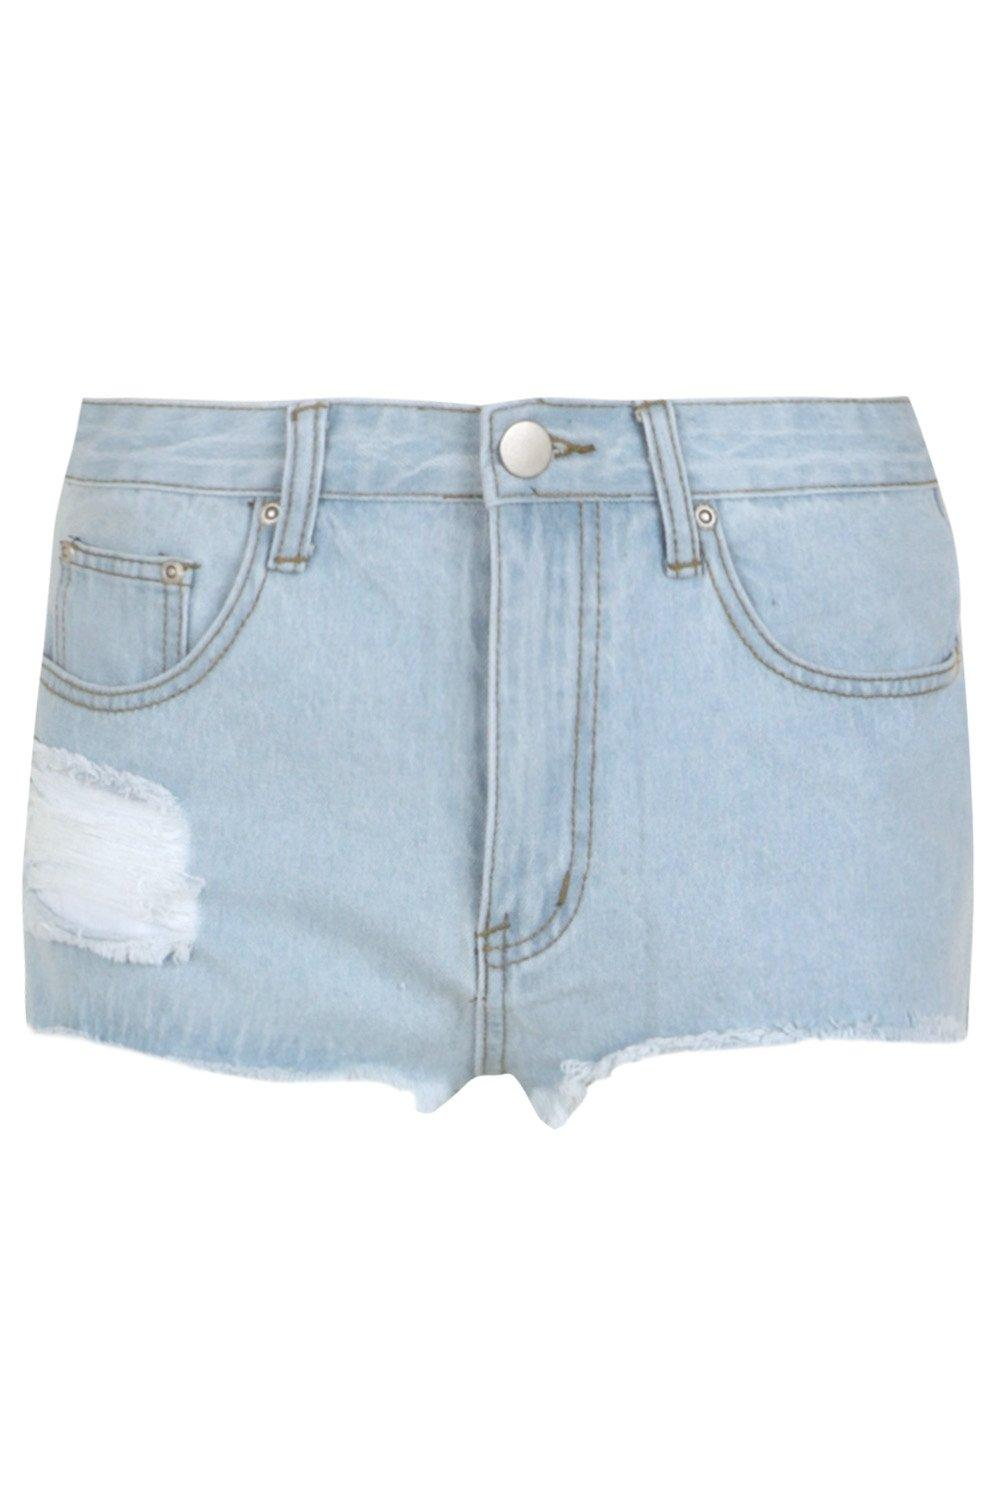 Shorts Hem Out Denim Mom Fray Cecily Cut blue x6agqwccYf